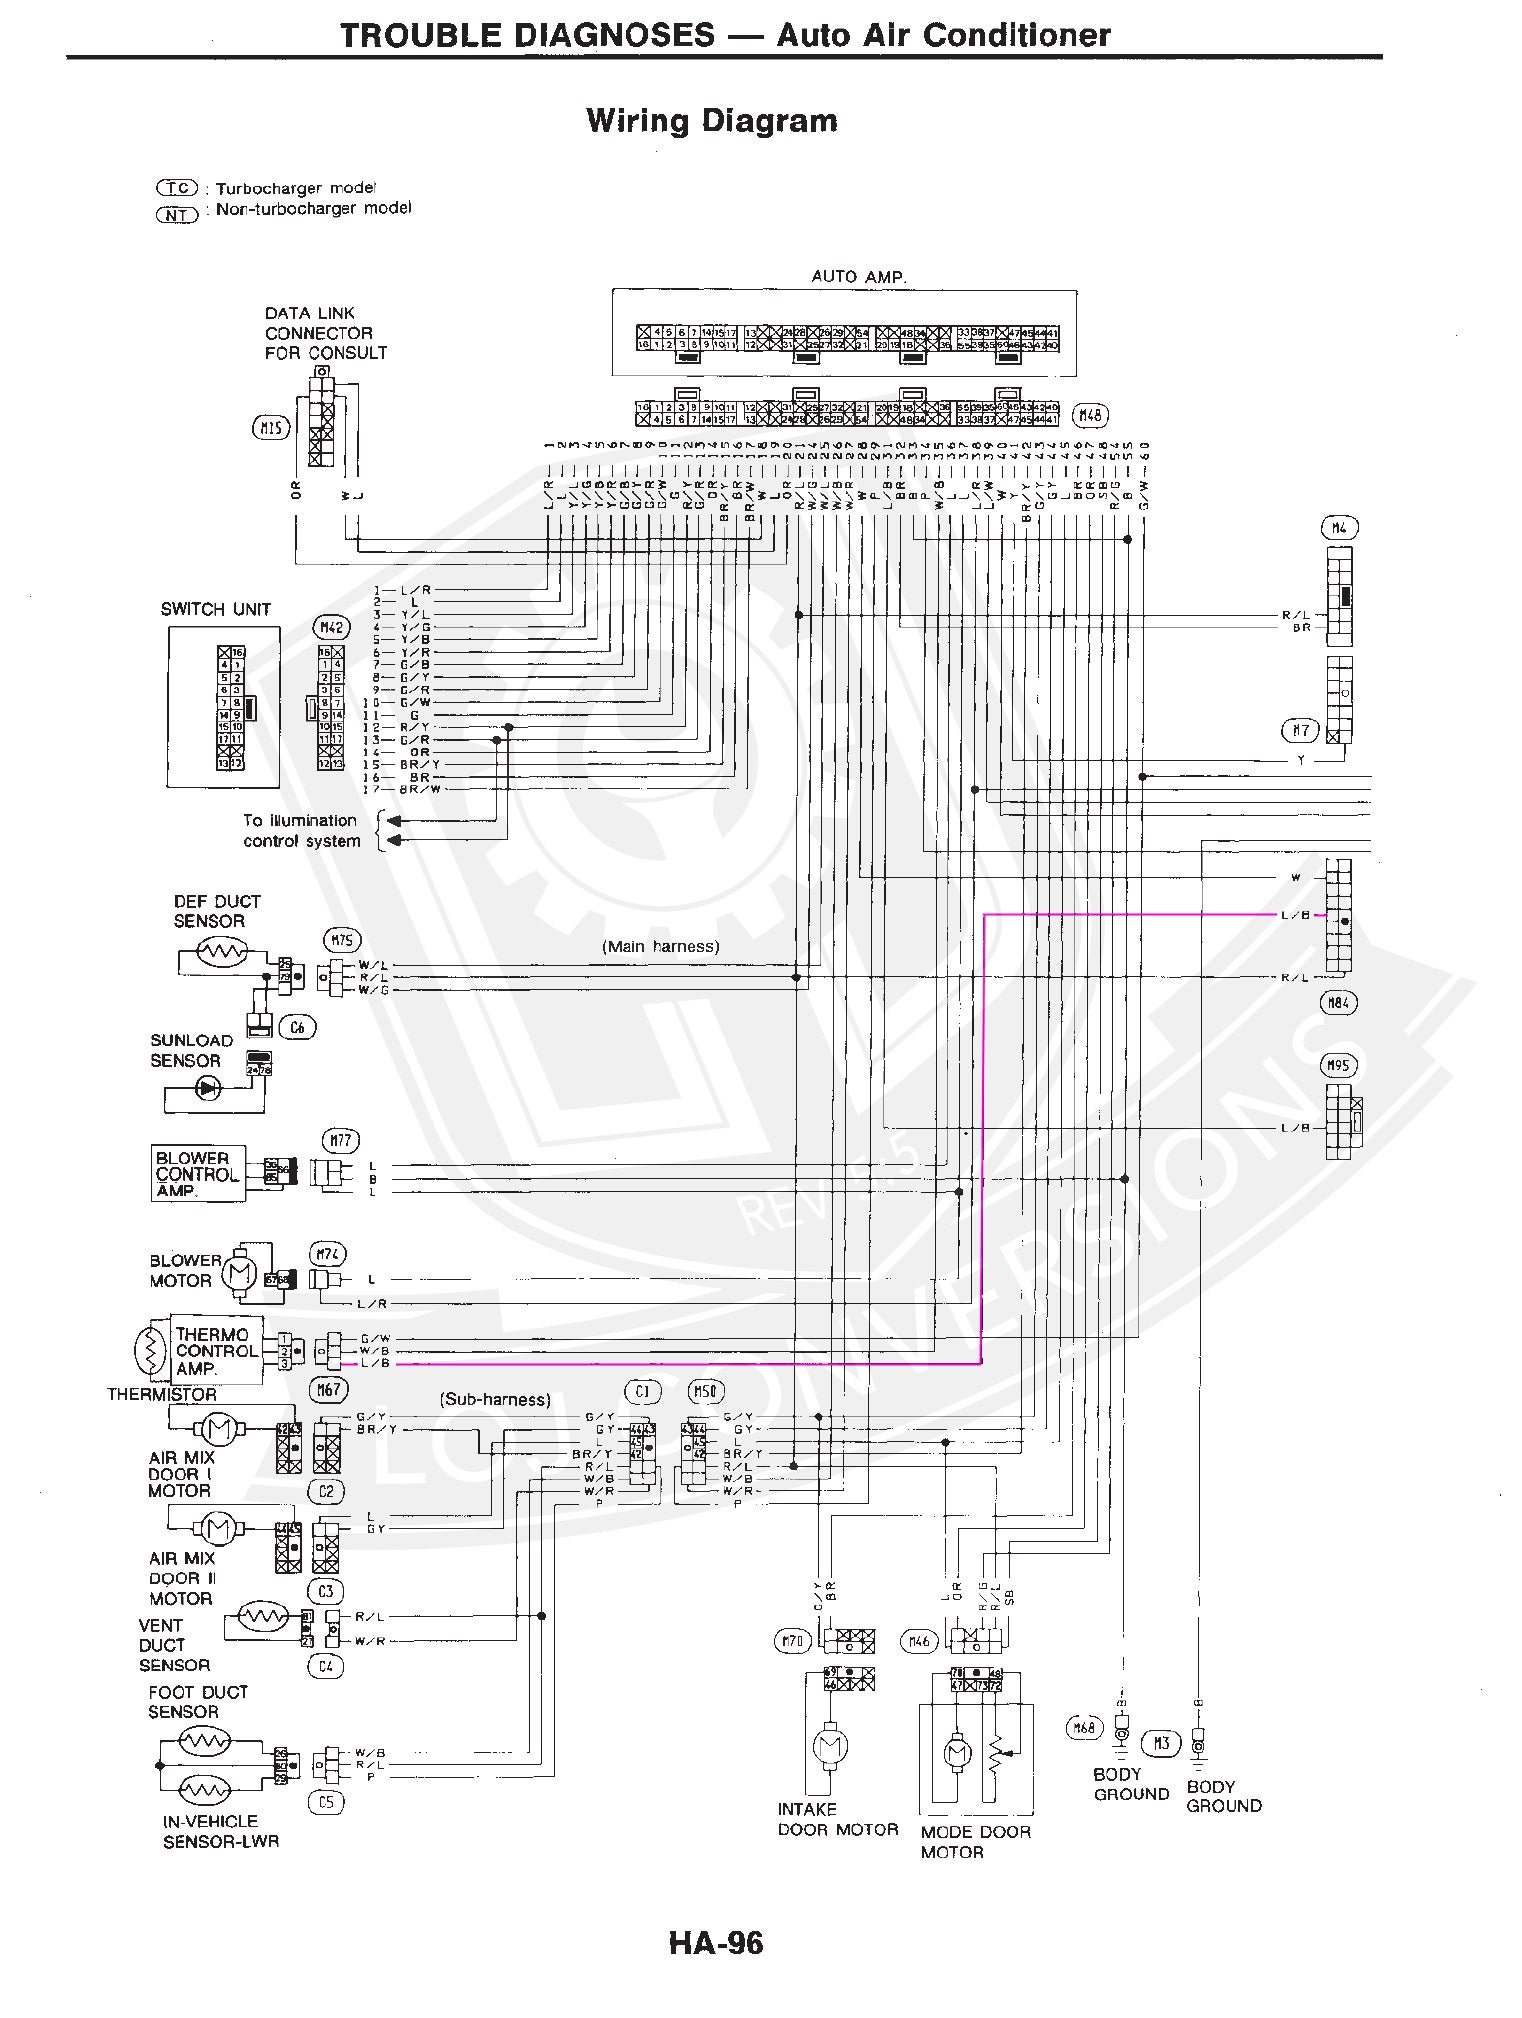 Wiring Diagram For Z32 Afm : Nissan zx climate control wiring harness